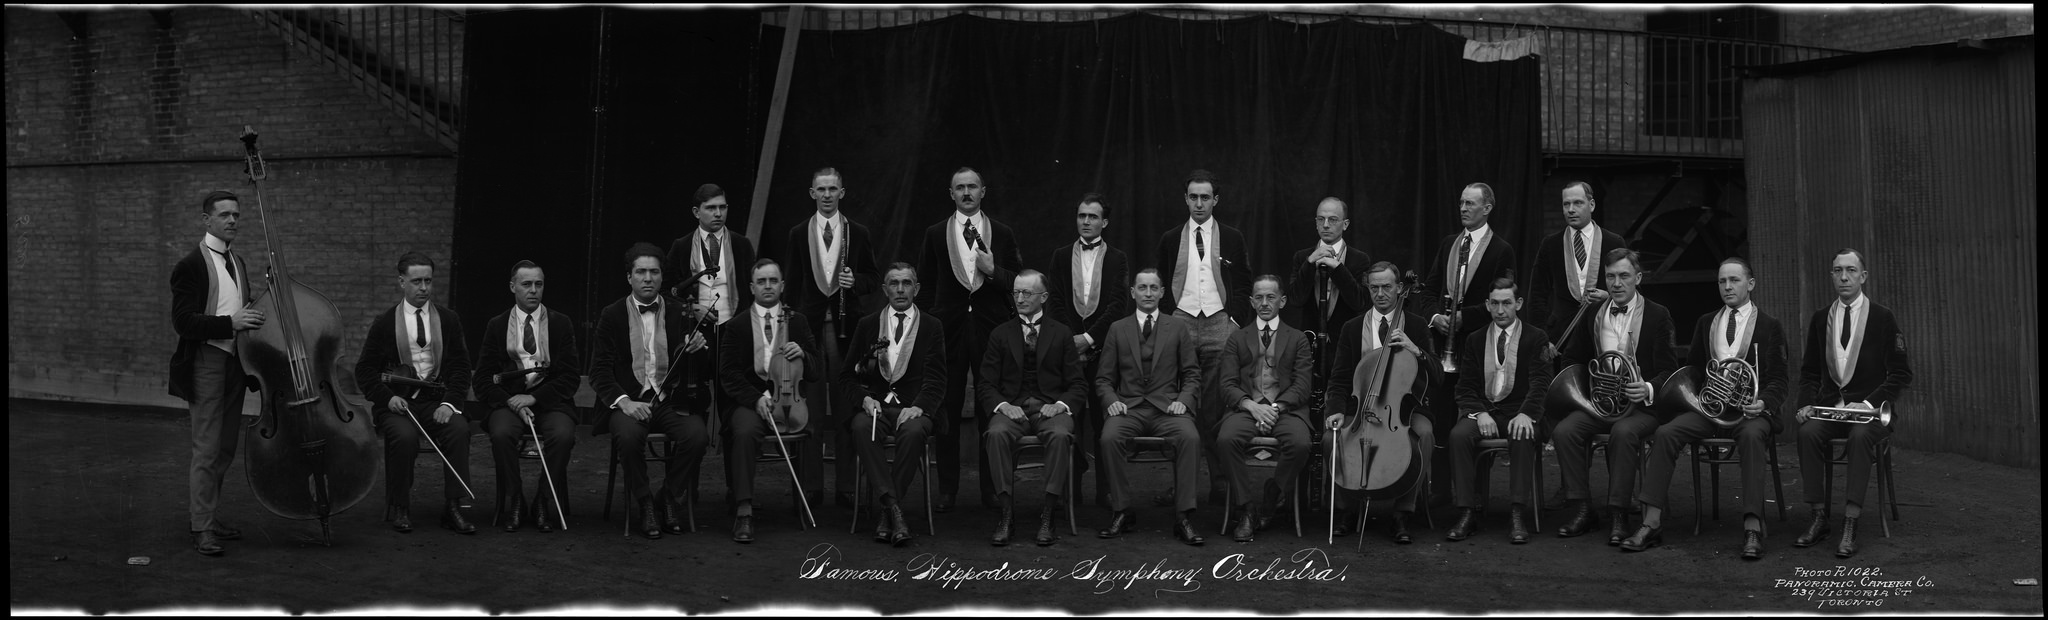 Famous Hippodrome Symphony Orchestra / Le célèbre Orchestre symphonique de l'hippodrome by BiblioArchives / LibraryArchives on Flickr (CC BY 2.0)